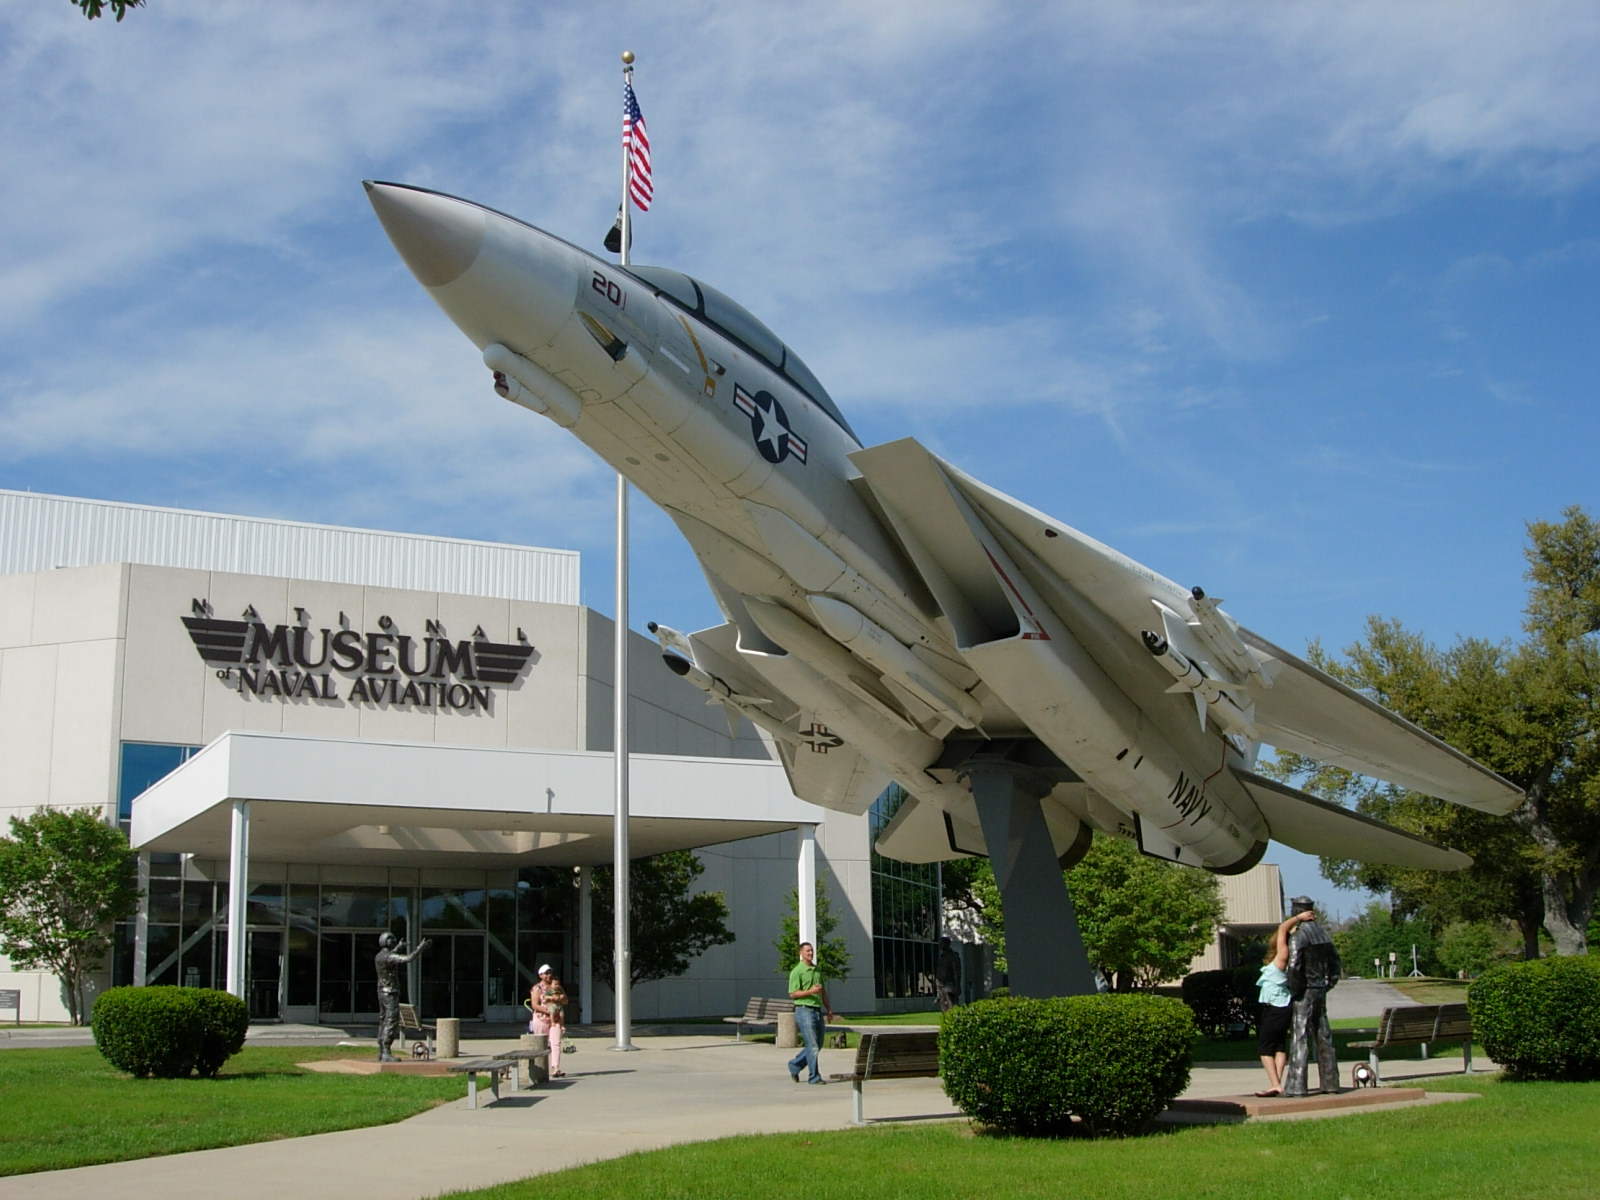 Visitors to the National Naval Aviation Museum are greeted by a F-14A Tomcat. The museum offers free admission and parking.